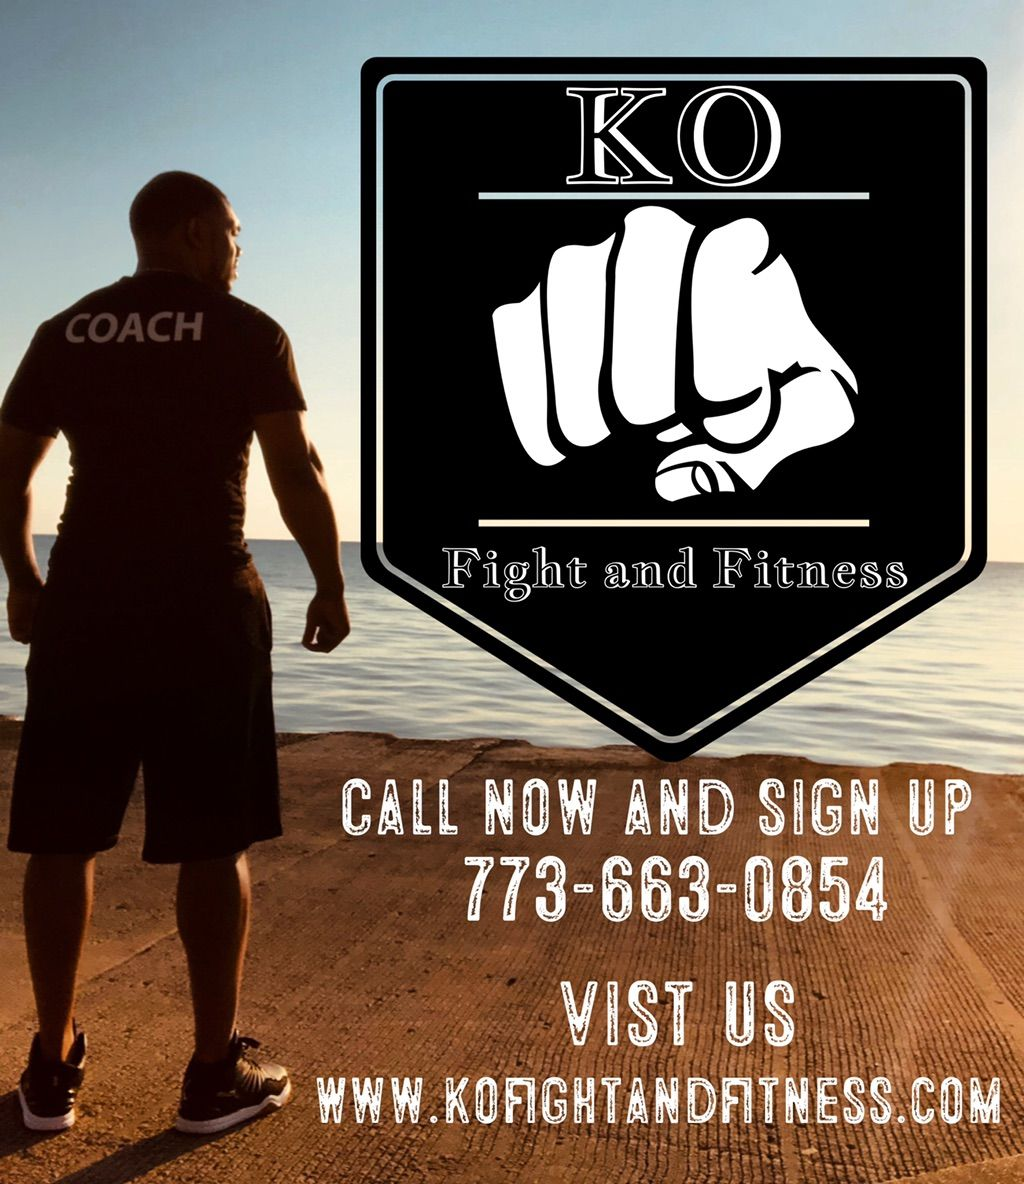 KO Fight and Fitness